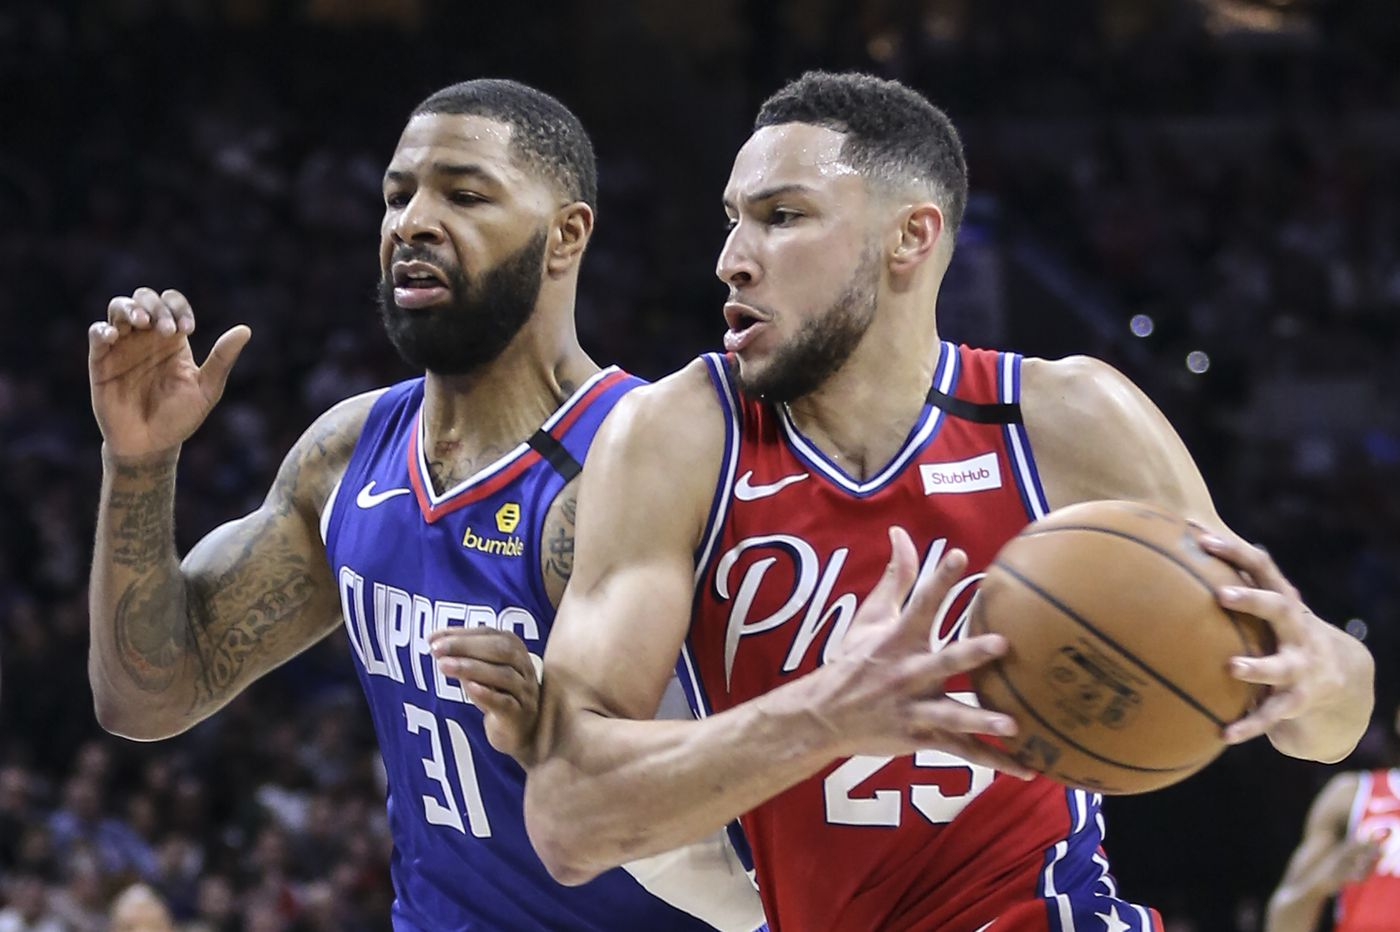 It's hard to keep up with Sixers' Ben Simmons, regardless of position